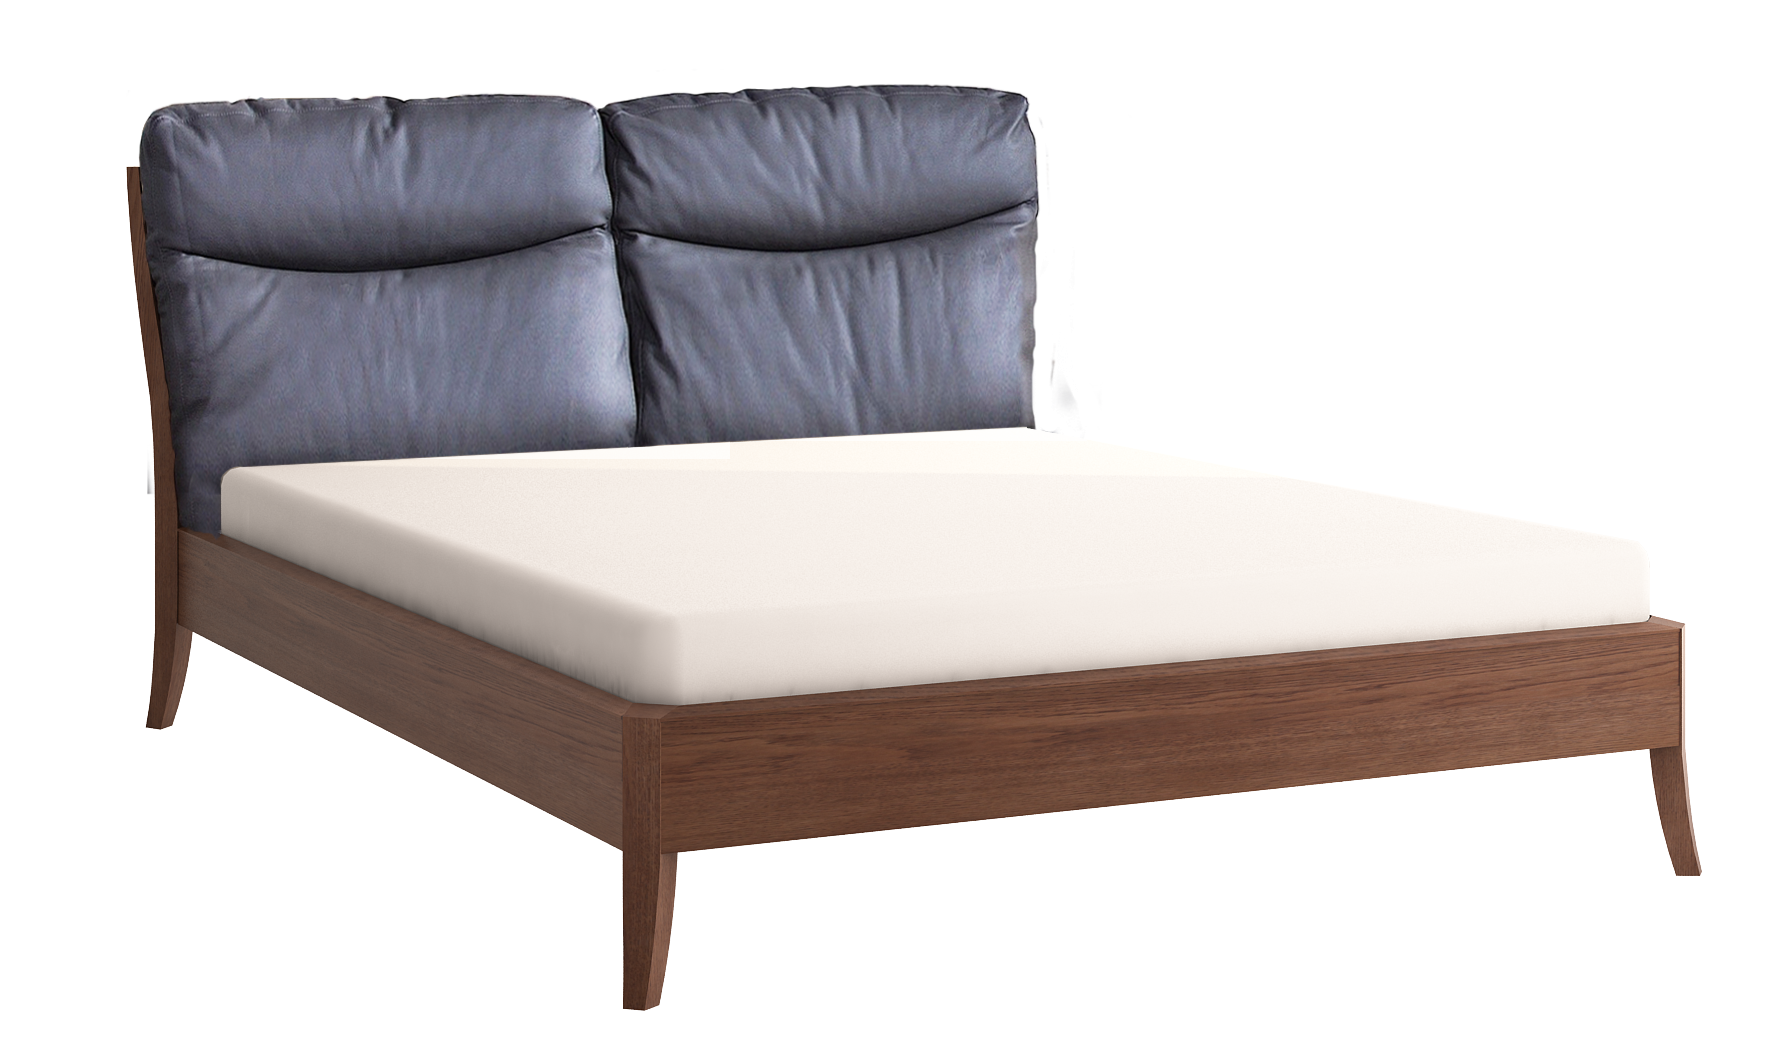 Dream Pure Bed 160 or 180